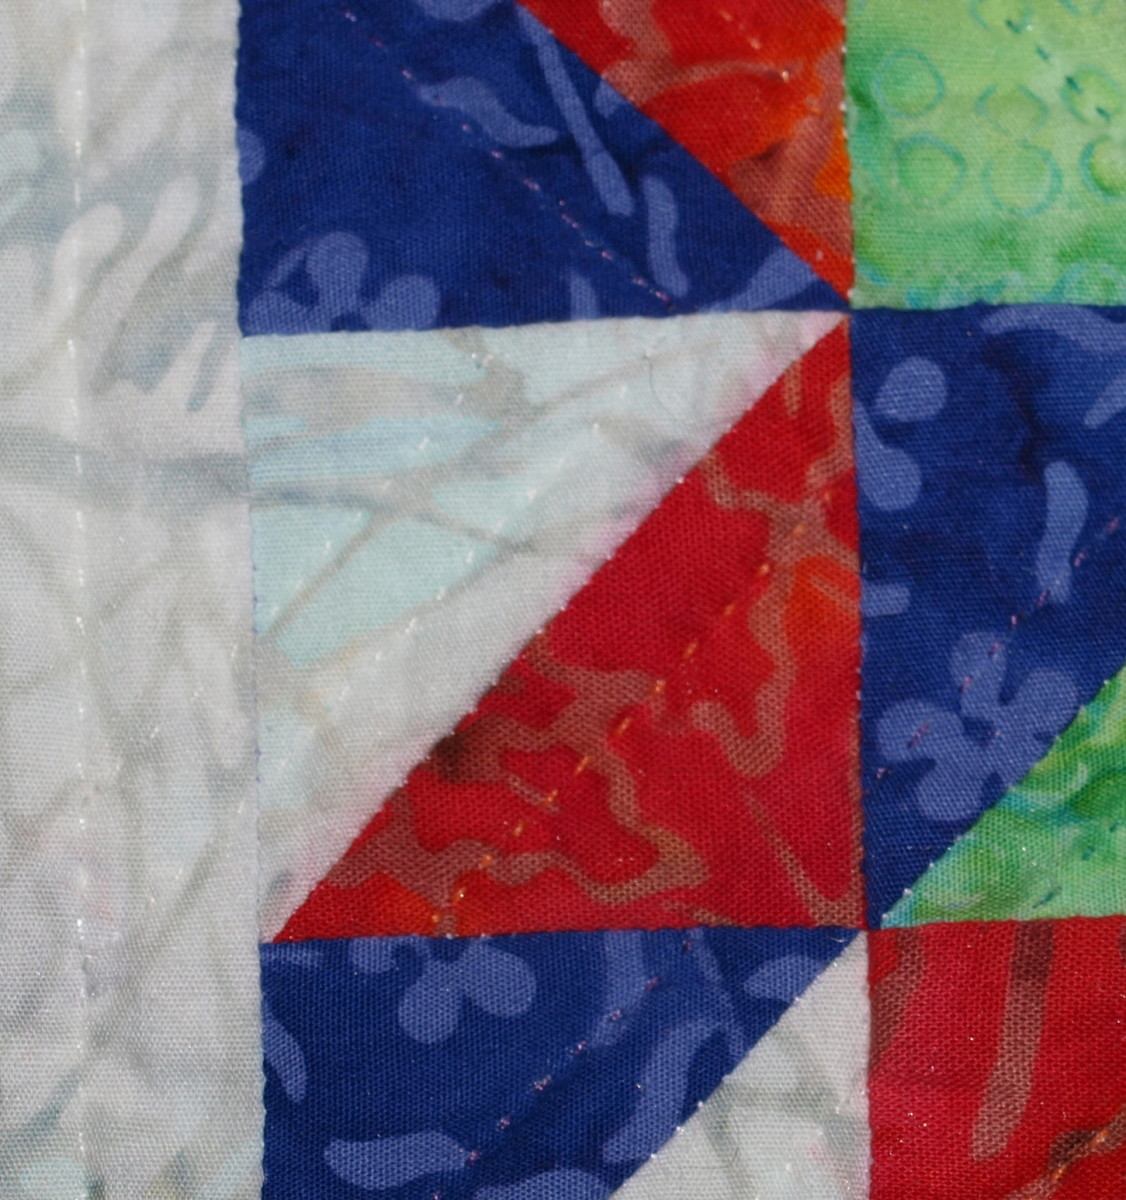 This quilt was spot cleaned and the red fabric ran when it got wet.  Look at the white fabric along the diagonal seam to see where the fabric bled.